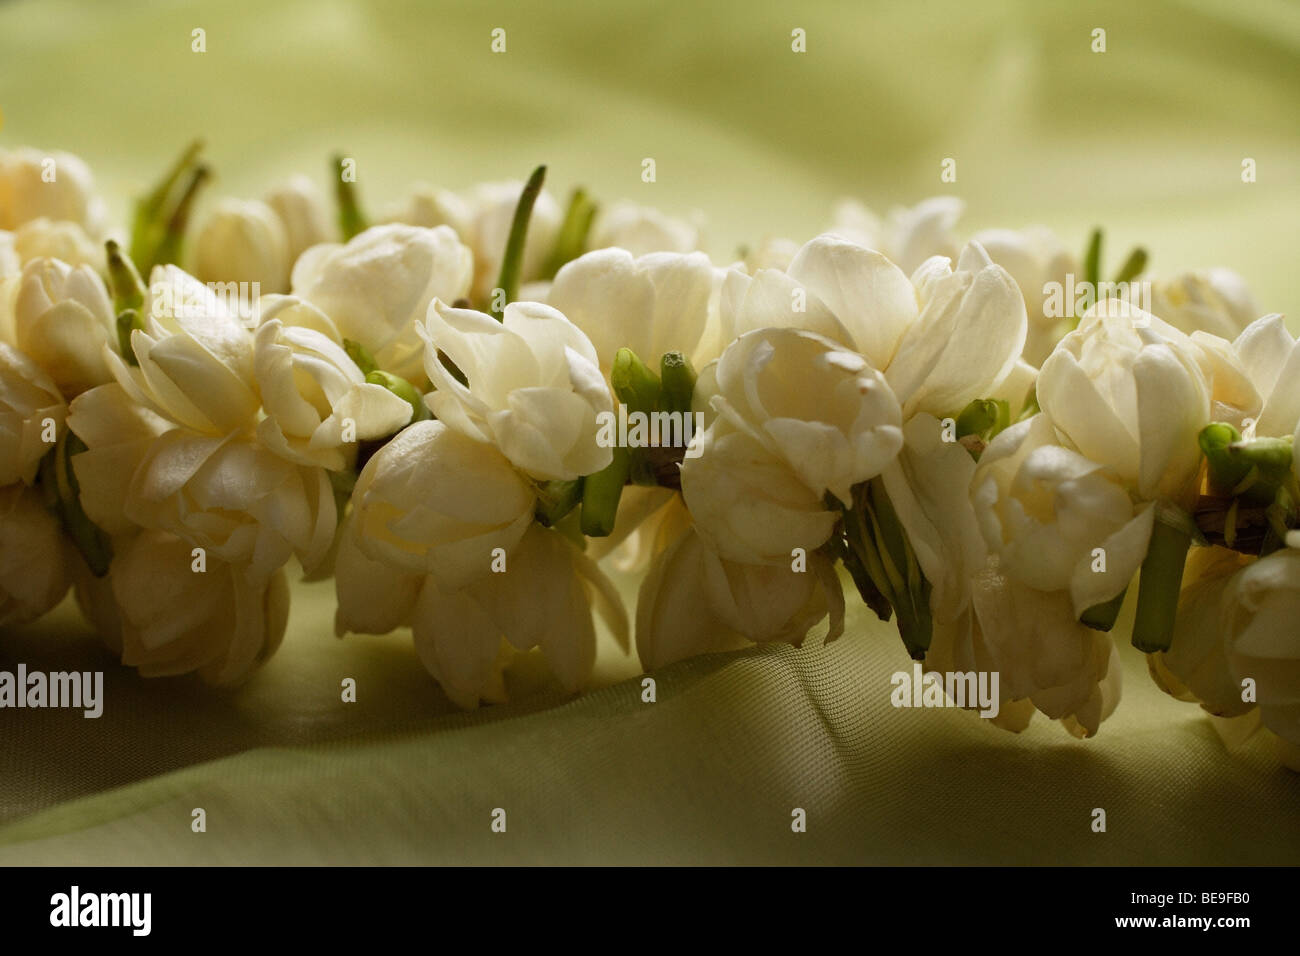 Jasmine Flower Garland Stock Photos Jasmine Flower Garland Stock